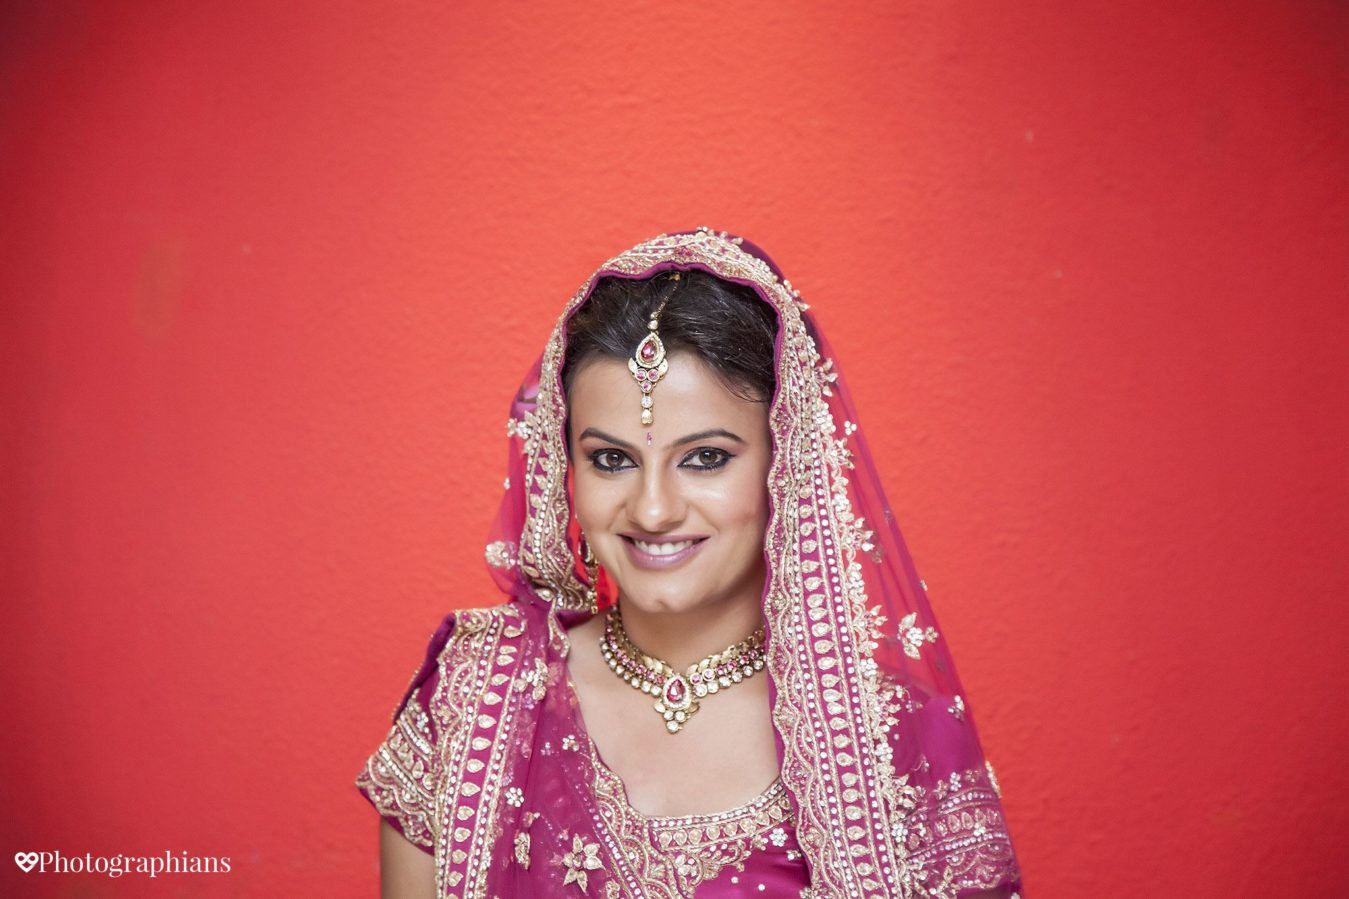 Indian wedding photography by Photographians candid wedding photographers